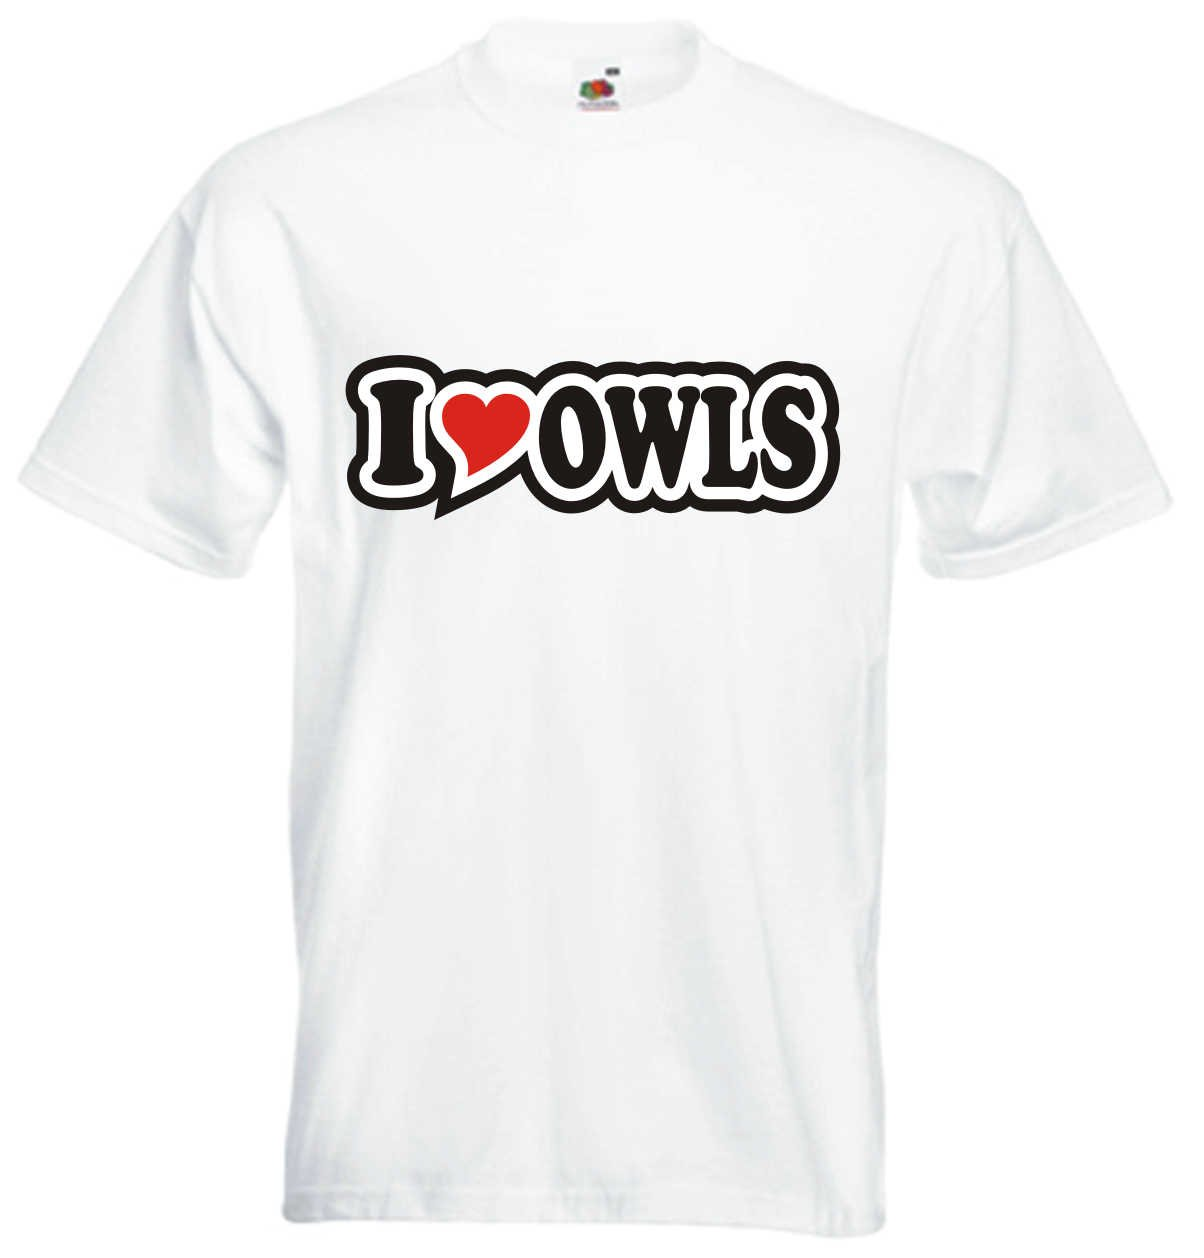 I Love Heart T-Shirt Men I LOVE OWLS Black Dragon